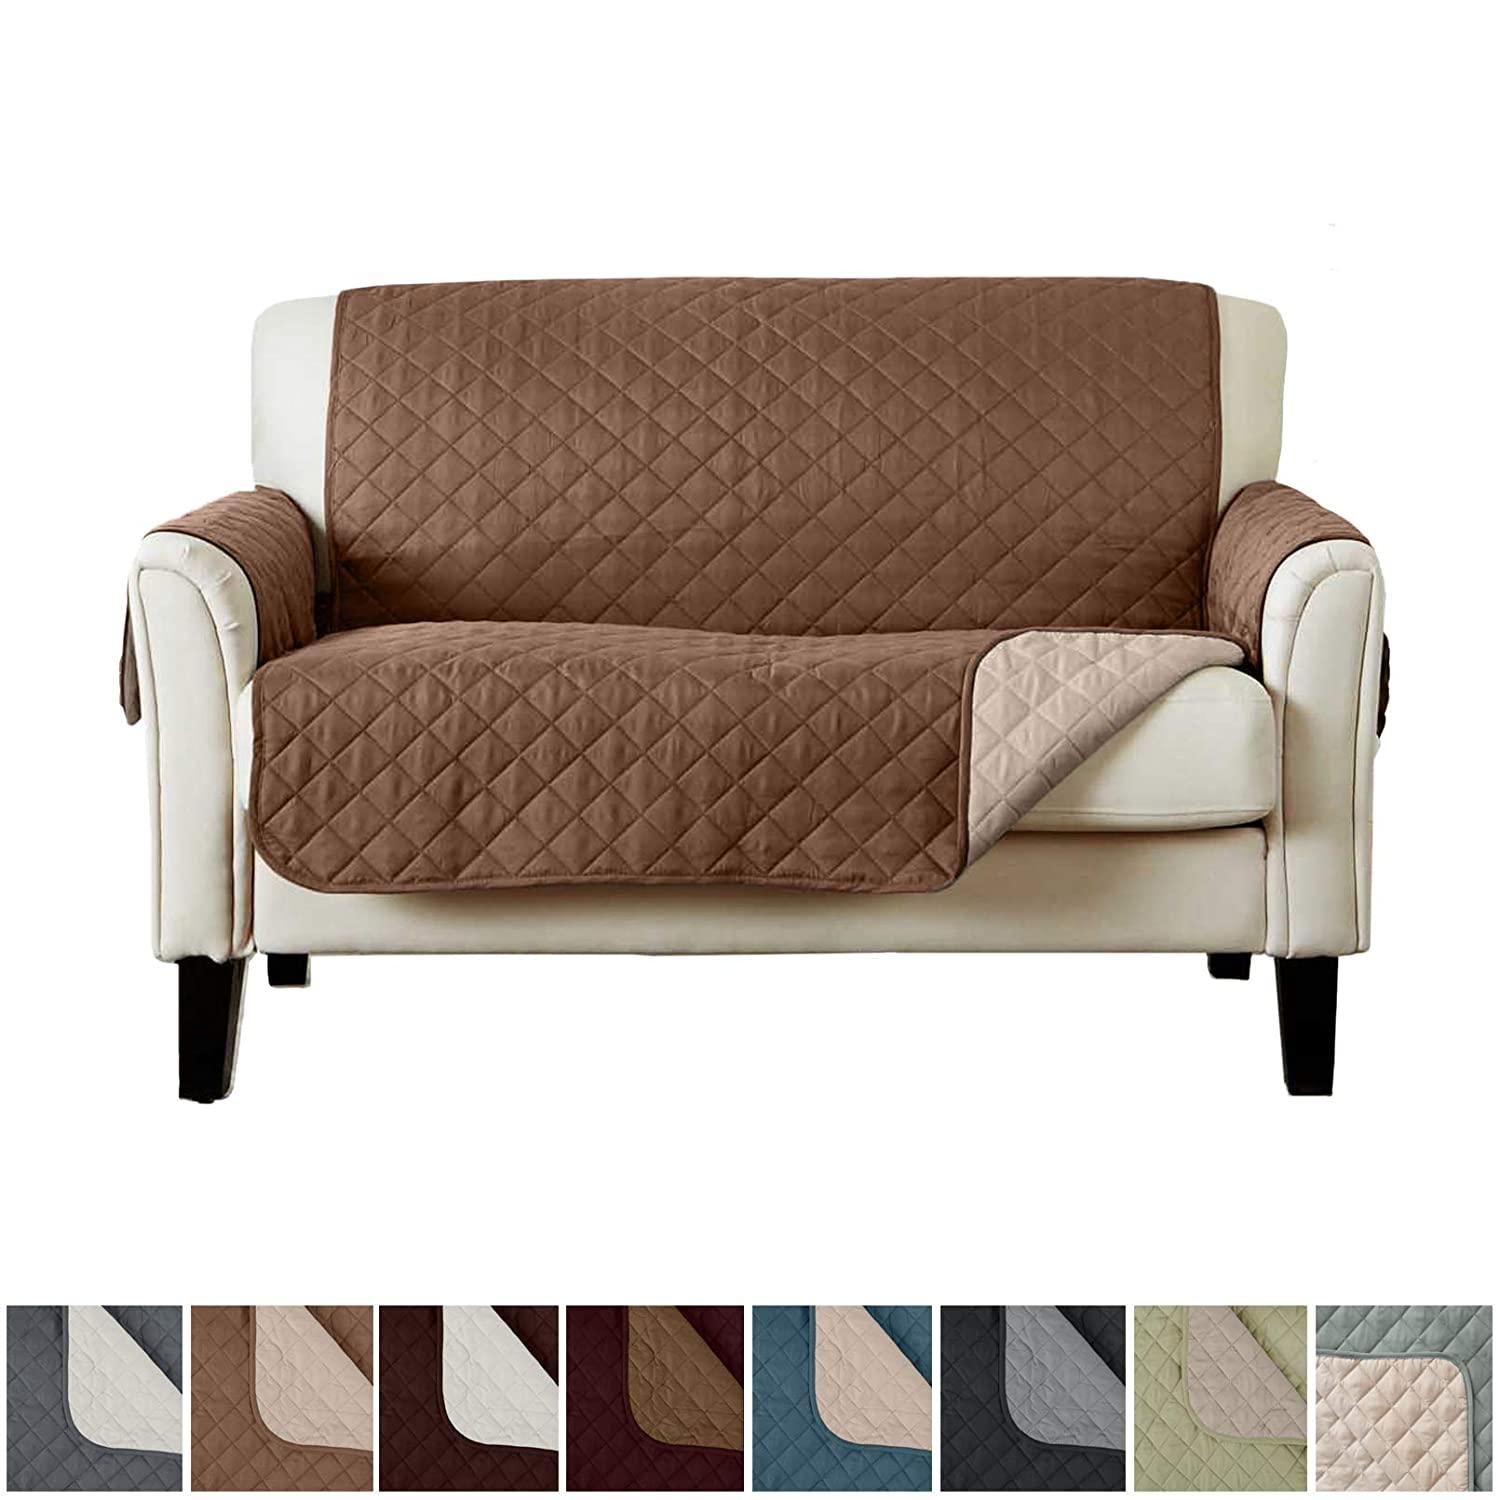 (Love Seat, Prairie / Flax) - Home Fashion Designs Deluxe Reversible Quilted Furniture Protector and PET PROTECTOR. Two Fresh Looks in One. Perfect for Families with Pets and Kids. By Brand. (Love Seat, Prairie/Flax) Love Seat Prairie / Flax B01LY0TEGH